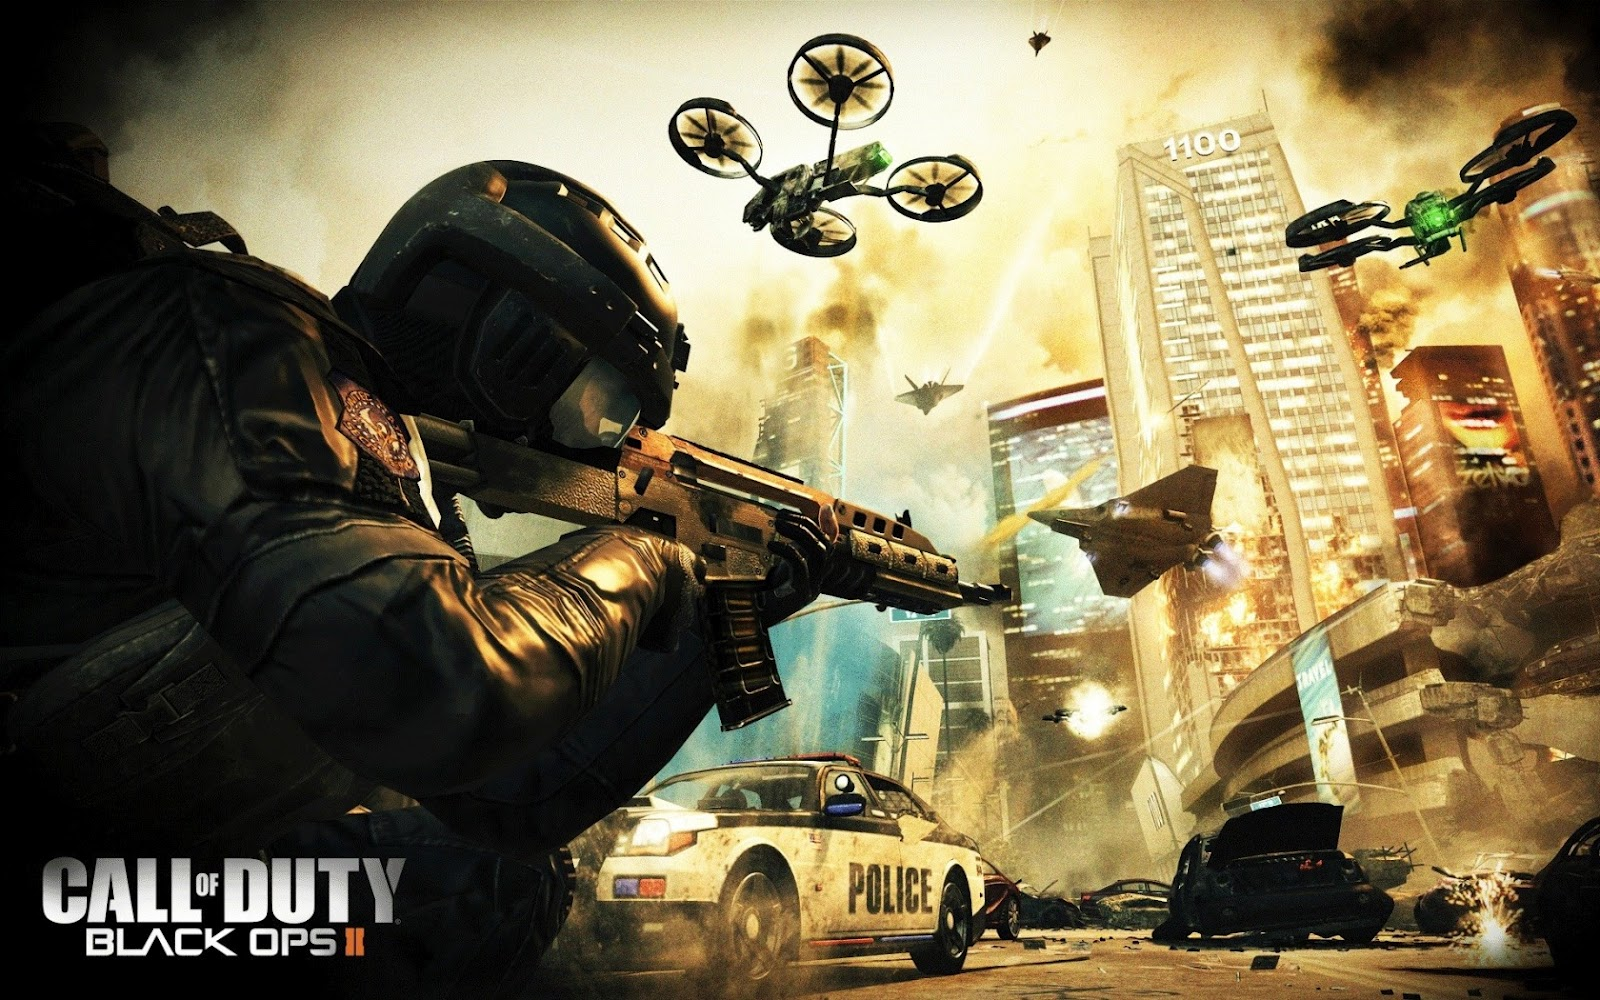 Call of Duty: Black Ops II Theme Download | Digiex